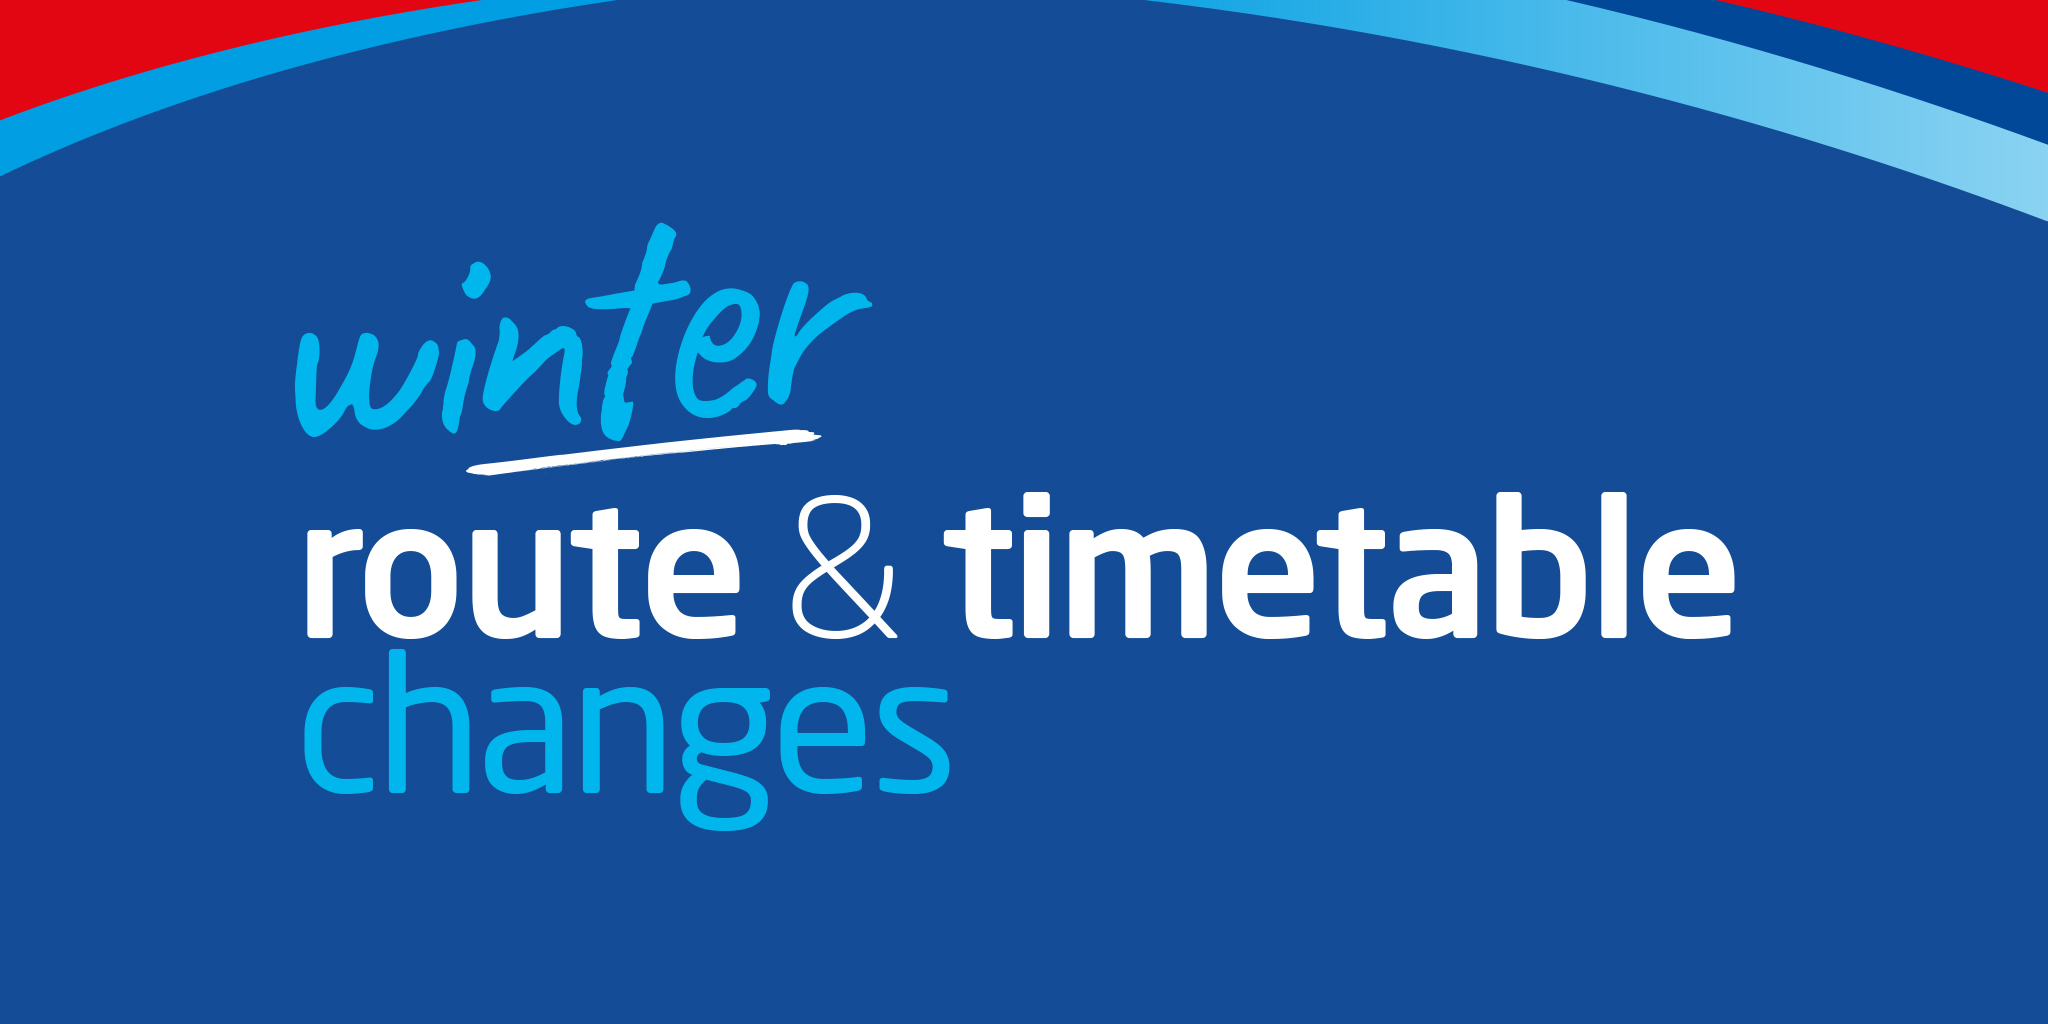 Illustration image that reads 'winter route & timetable changes'